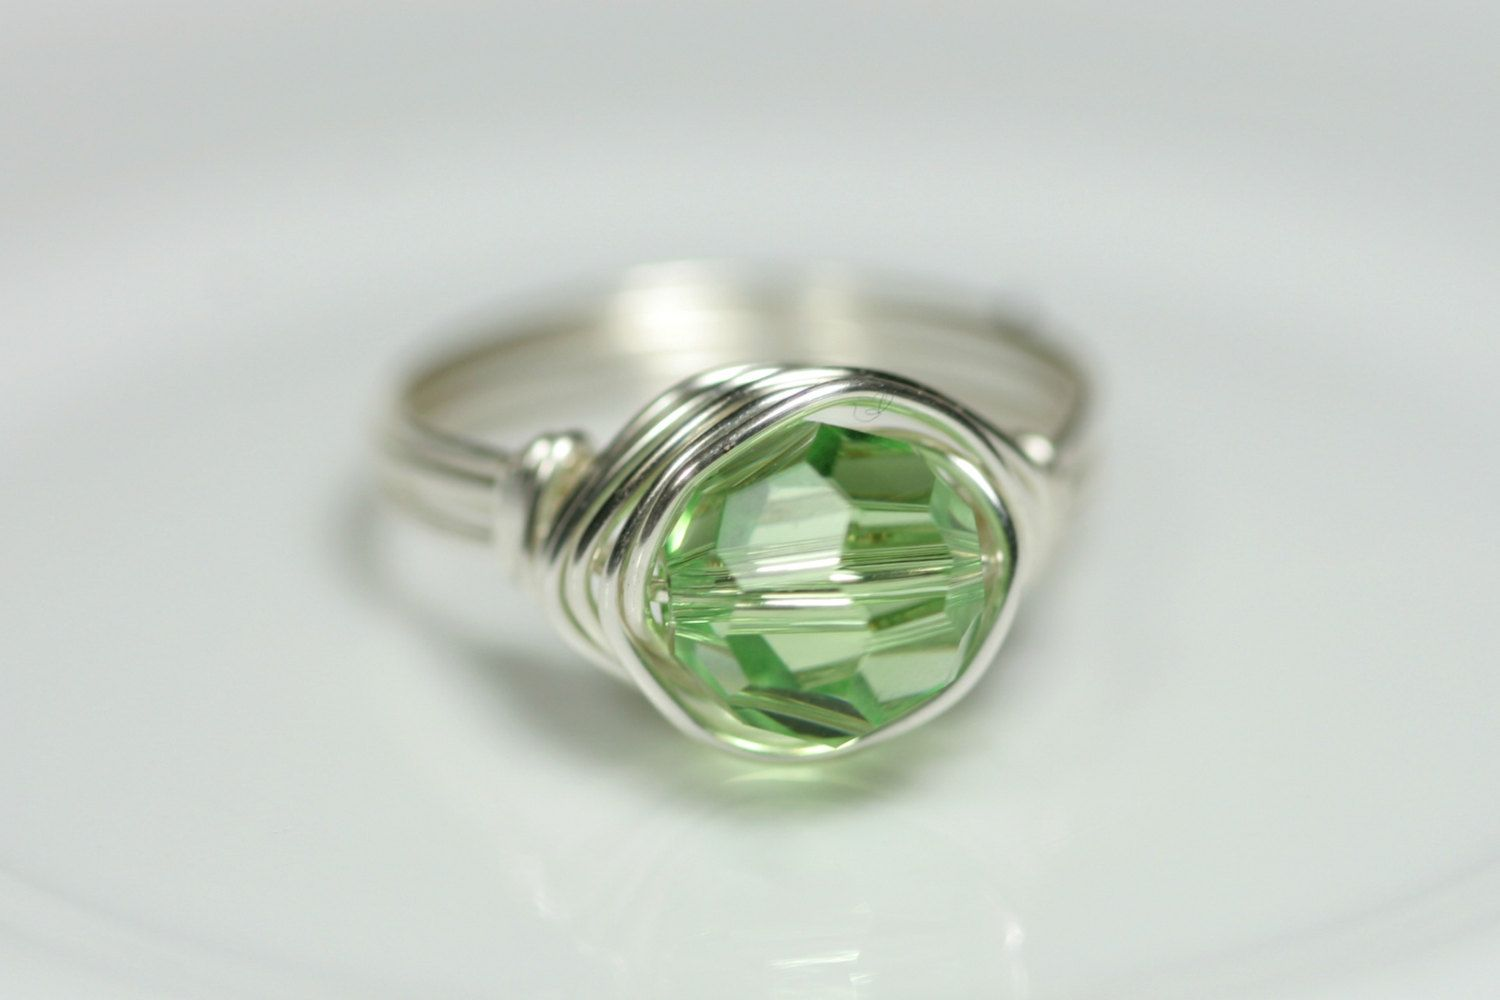 b14d7d504 Wire Wrapped Jewelry · Peridot Ring Swarovski Ring, Swarovski Crystals, Green  Rings, Handmade Sterling Silver, Sterling